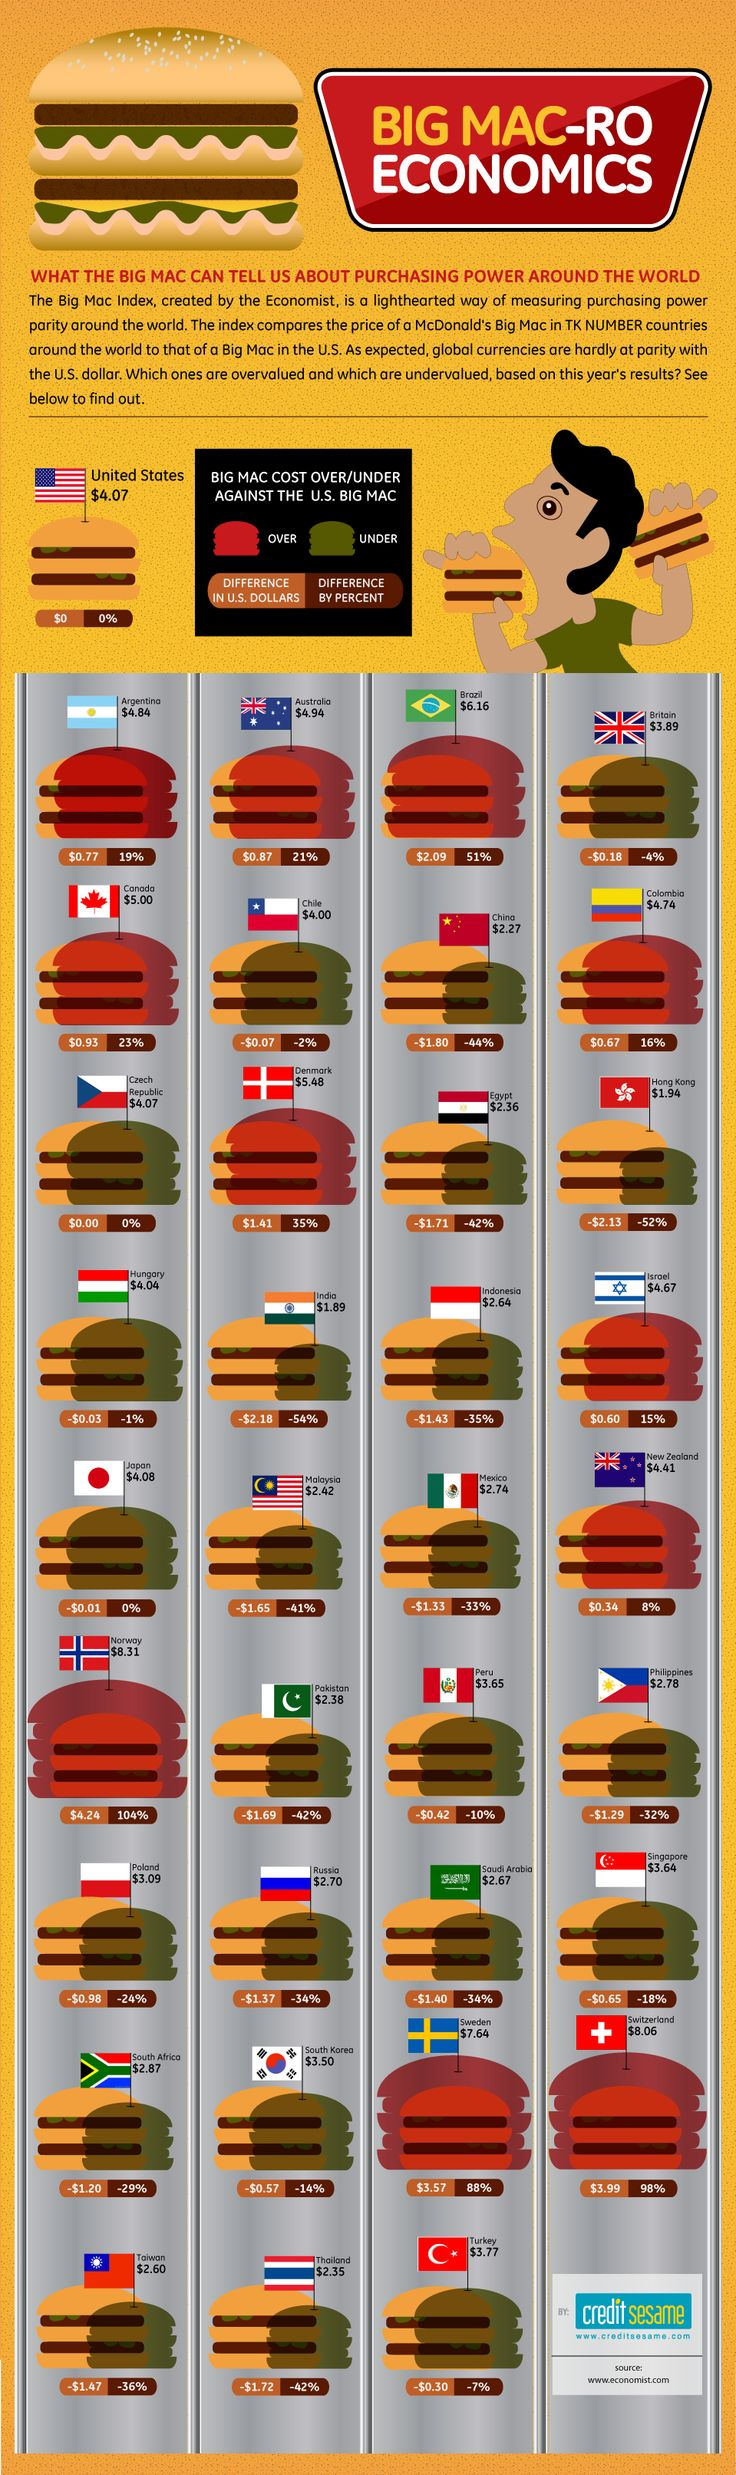 Economics. Comparative cost of Big Mac in many countries. Chart with negative numbers and percent difference.